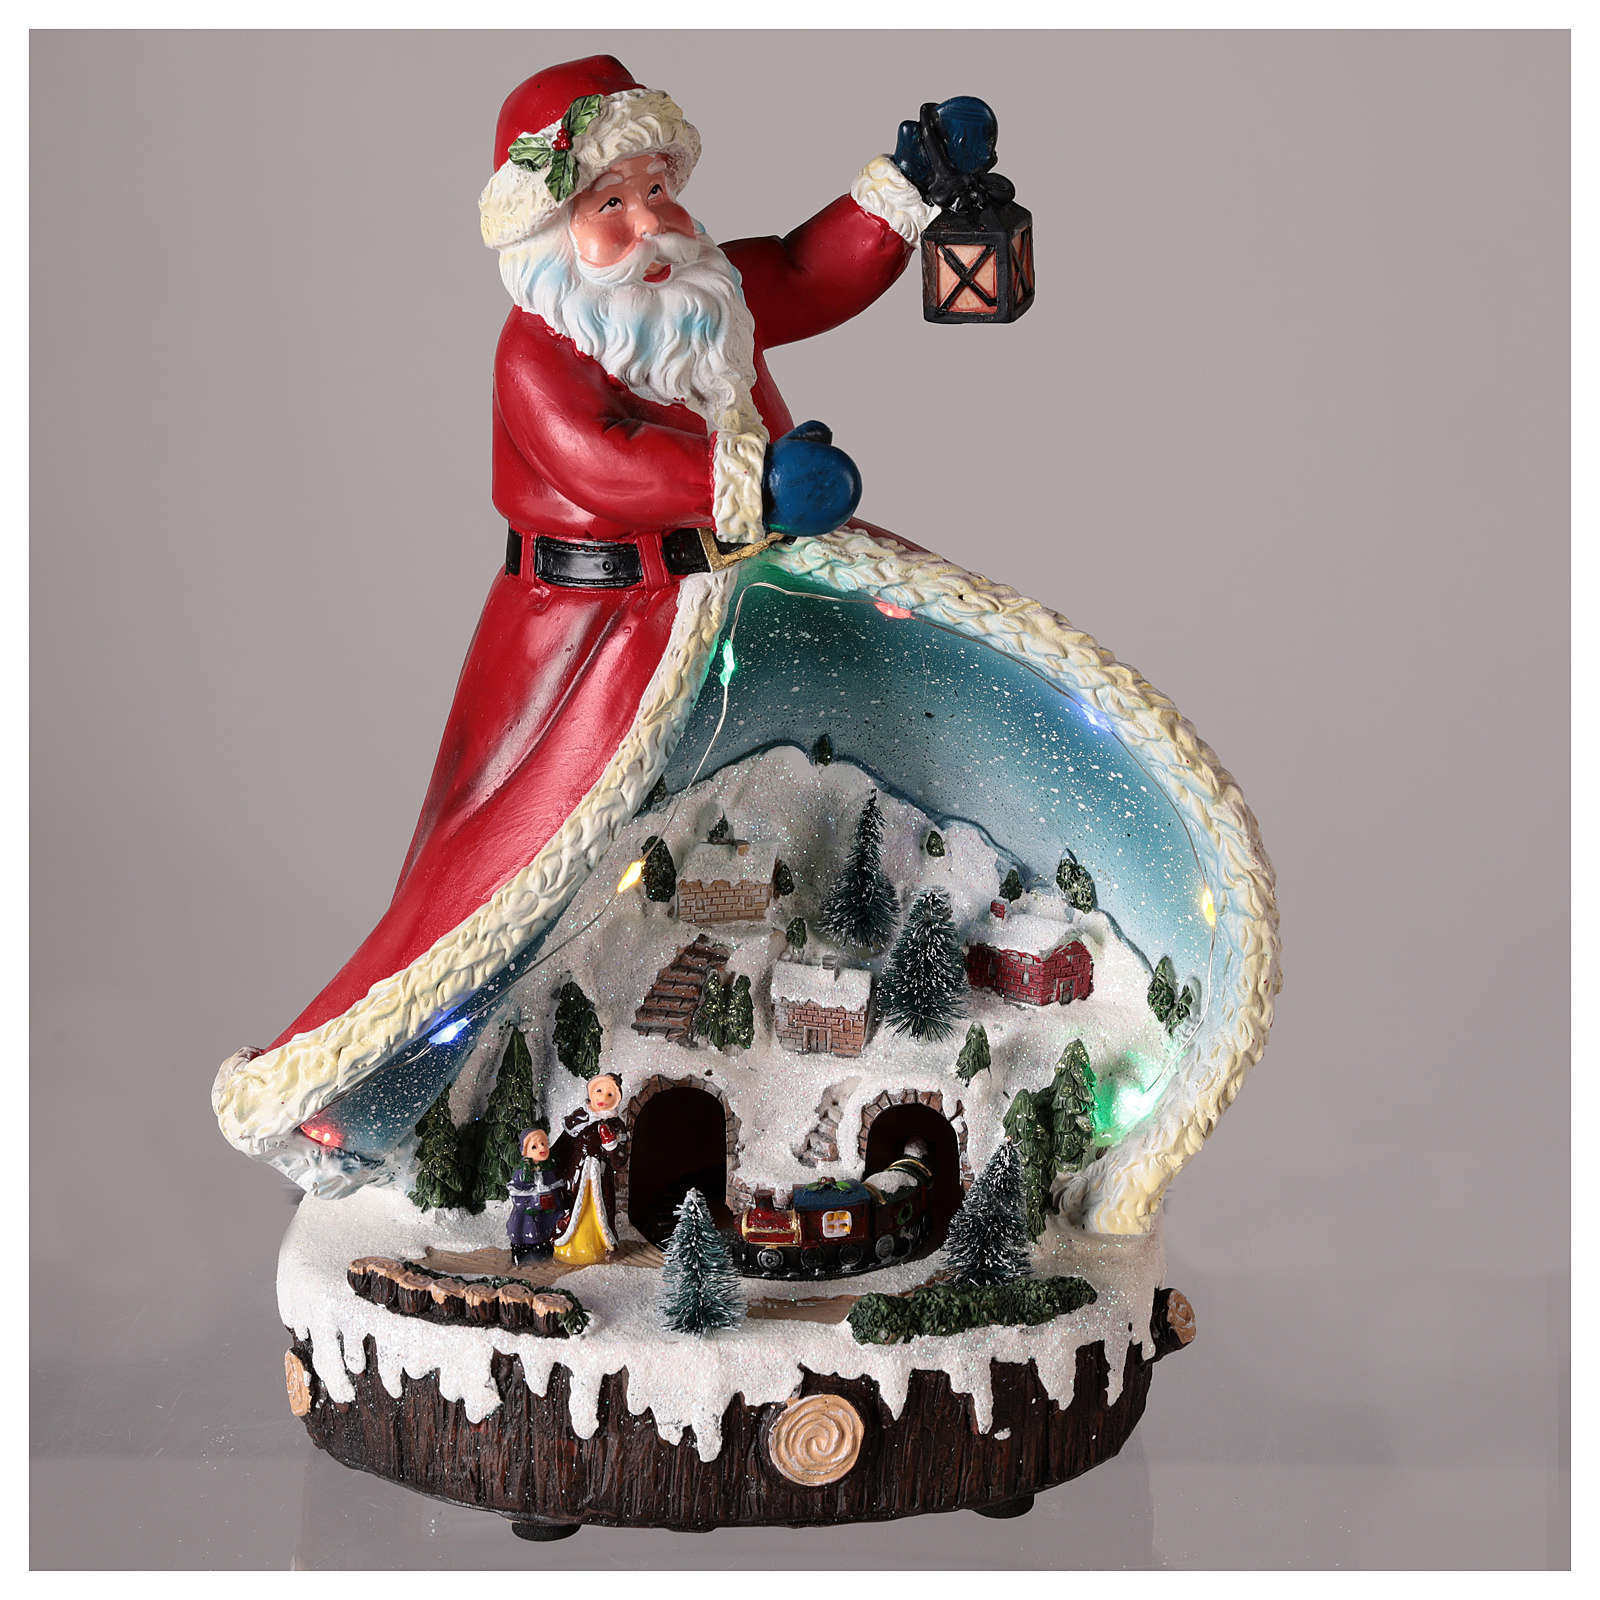 Statue of Santa Claus with village 30x20x15 3